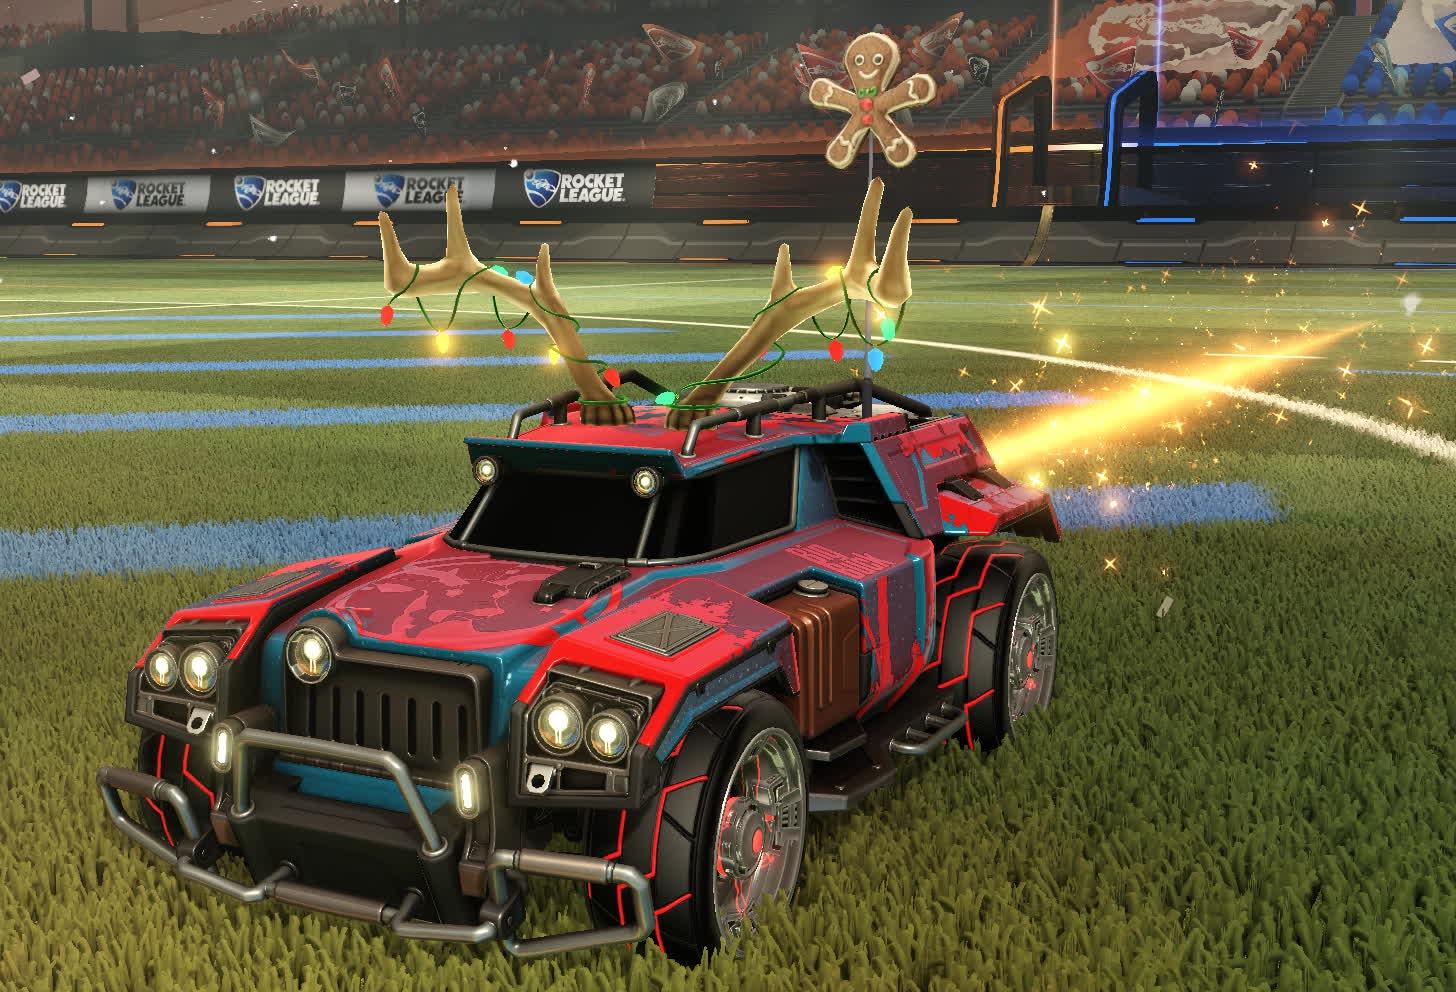 rlfashionadvice, Christmas Car 2.0 GIFs